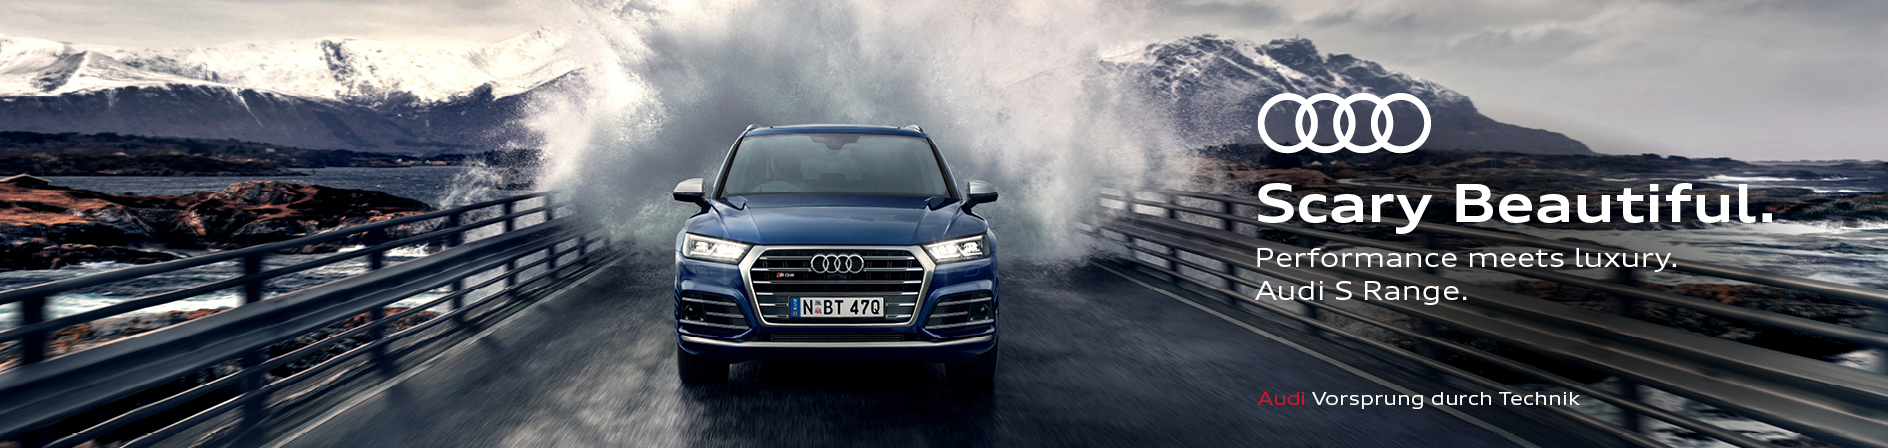 Audi Australia launches new 'Scary Beautiful' campaign for the Audi S model via WolfKing